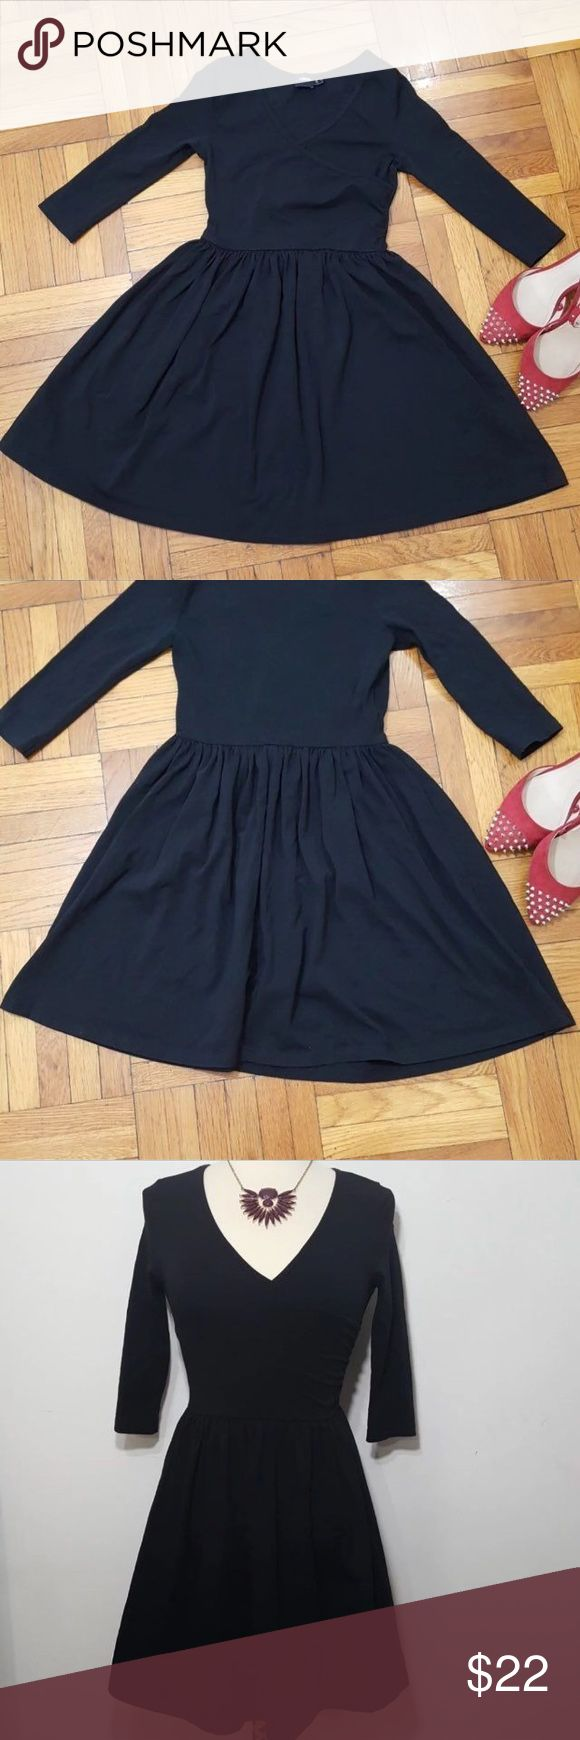 NWOT black asos skater dress -size 2 -ASOS  -3/4 sleeves  -all black -faux wrap around neckline -worn once for a photo shoot  -no rips or stains -NWOT -slight stretch -super soft fabric NO TRADES  firm price unless bundled SAME day shipping - buyer will be notified if item can't be shipped the same day ASOS Dresses Mini